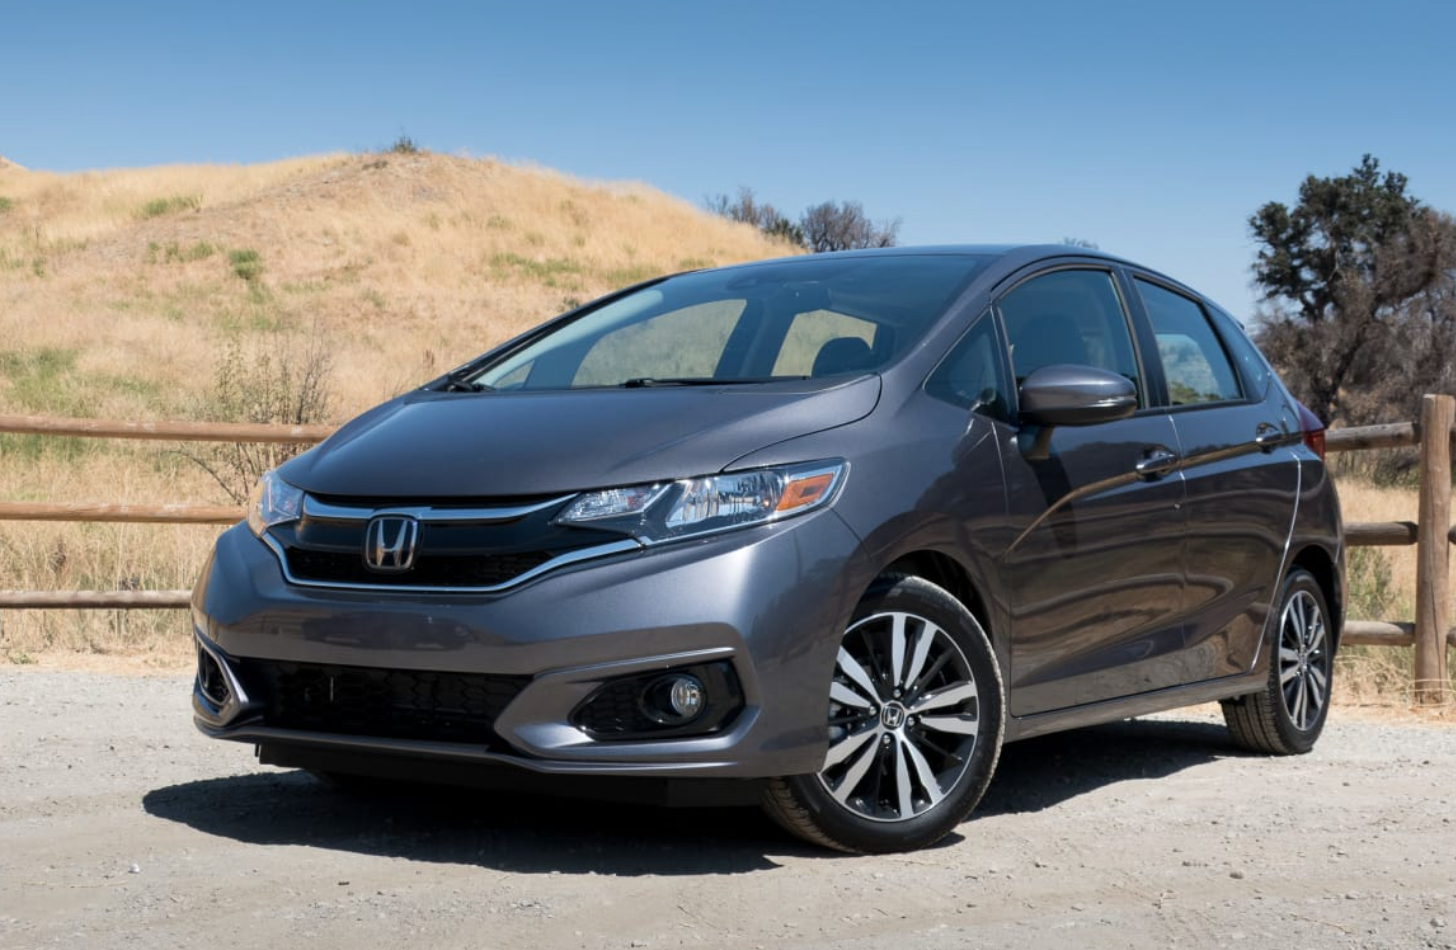 New Honda Fit in Midlothian, VA